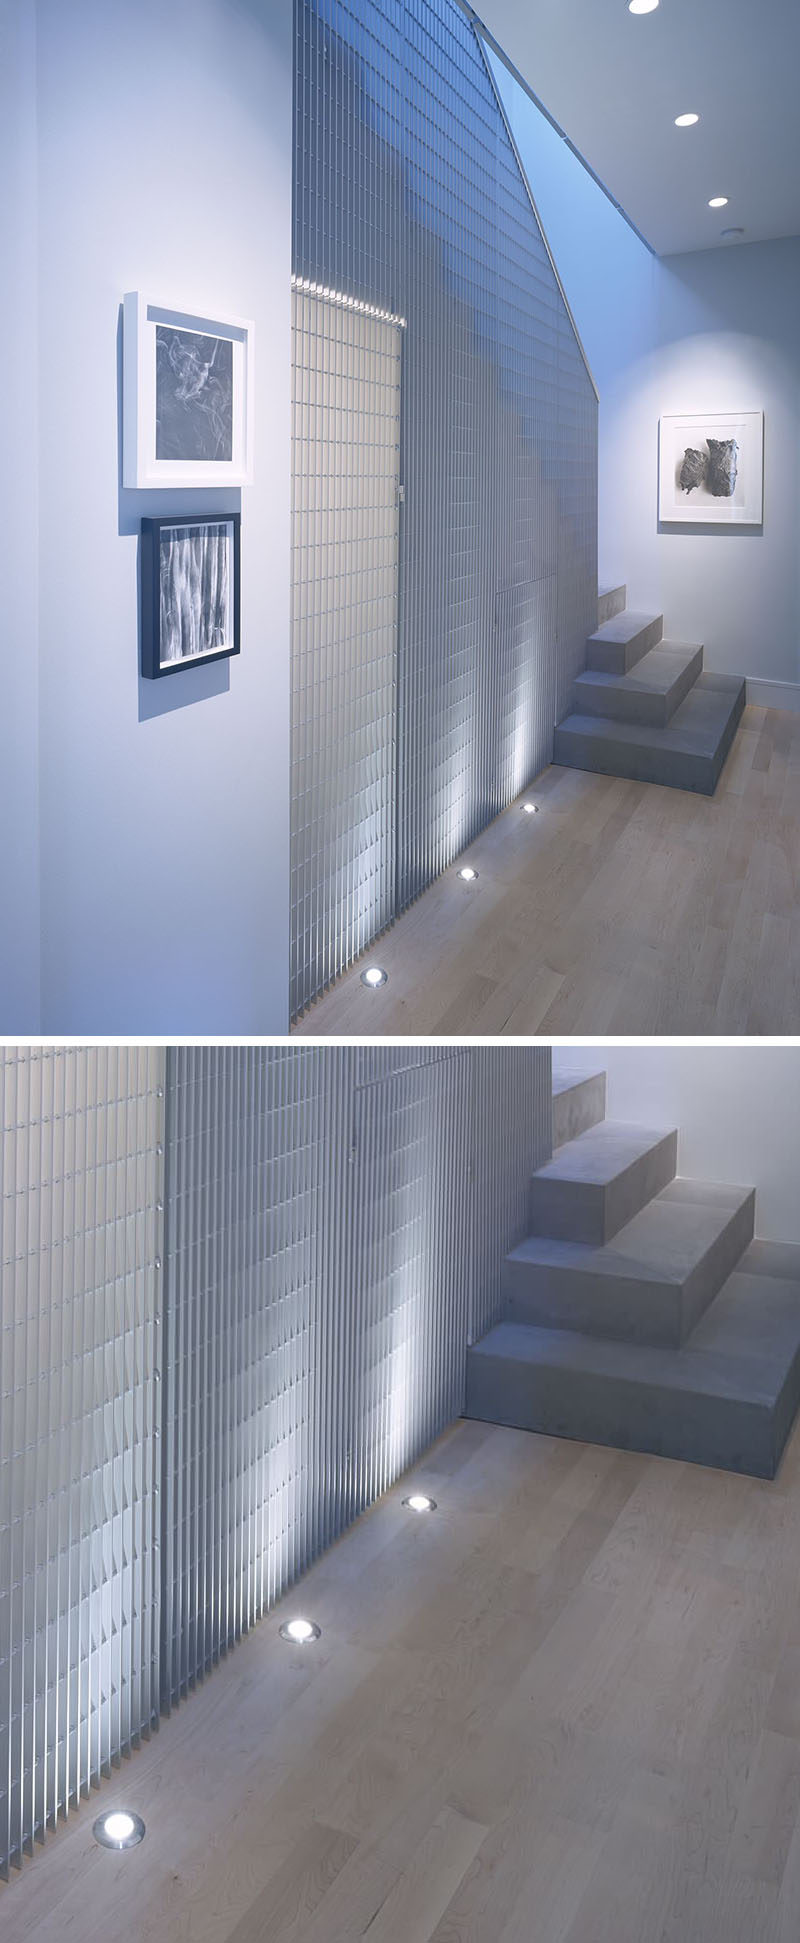 7 Interiors That Use Dramatic Uplighting To Brighten A Space // The lights beneath the grid-like wall in this home cast a cool light and make the texture on the wall more dramatic.